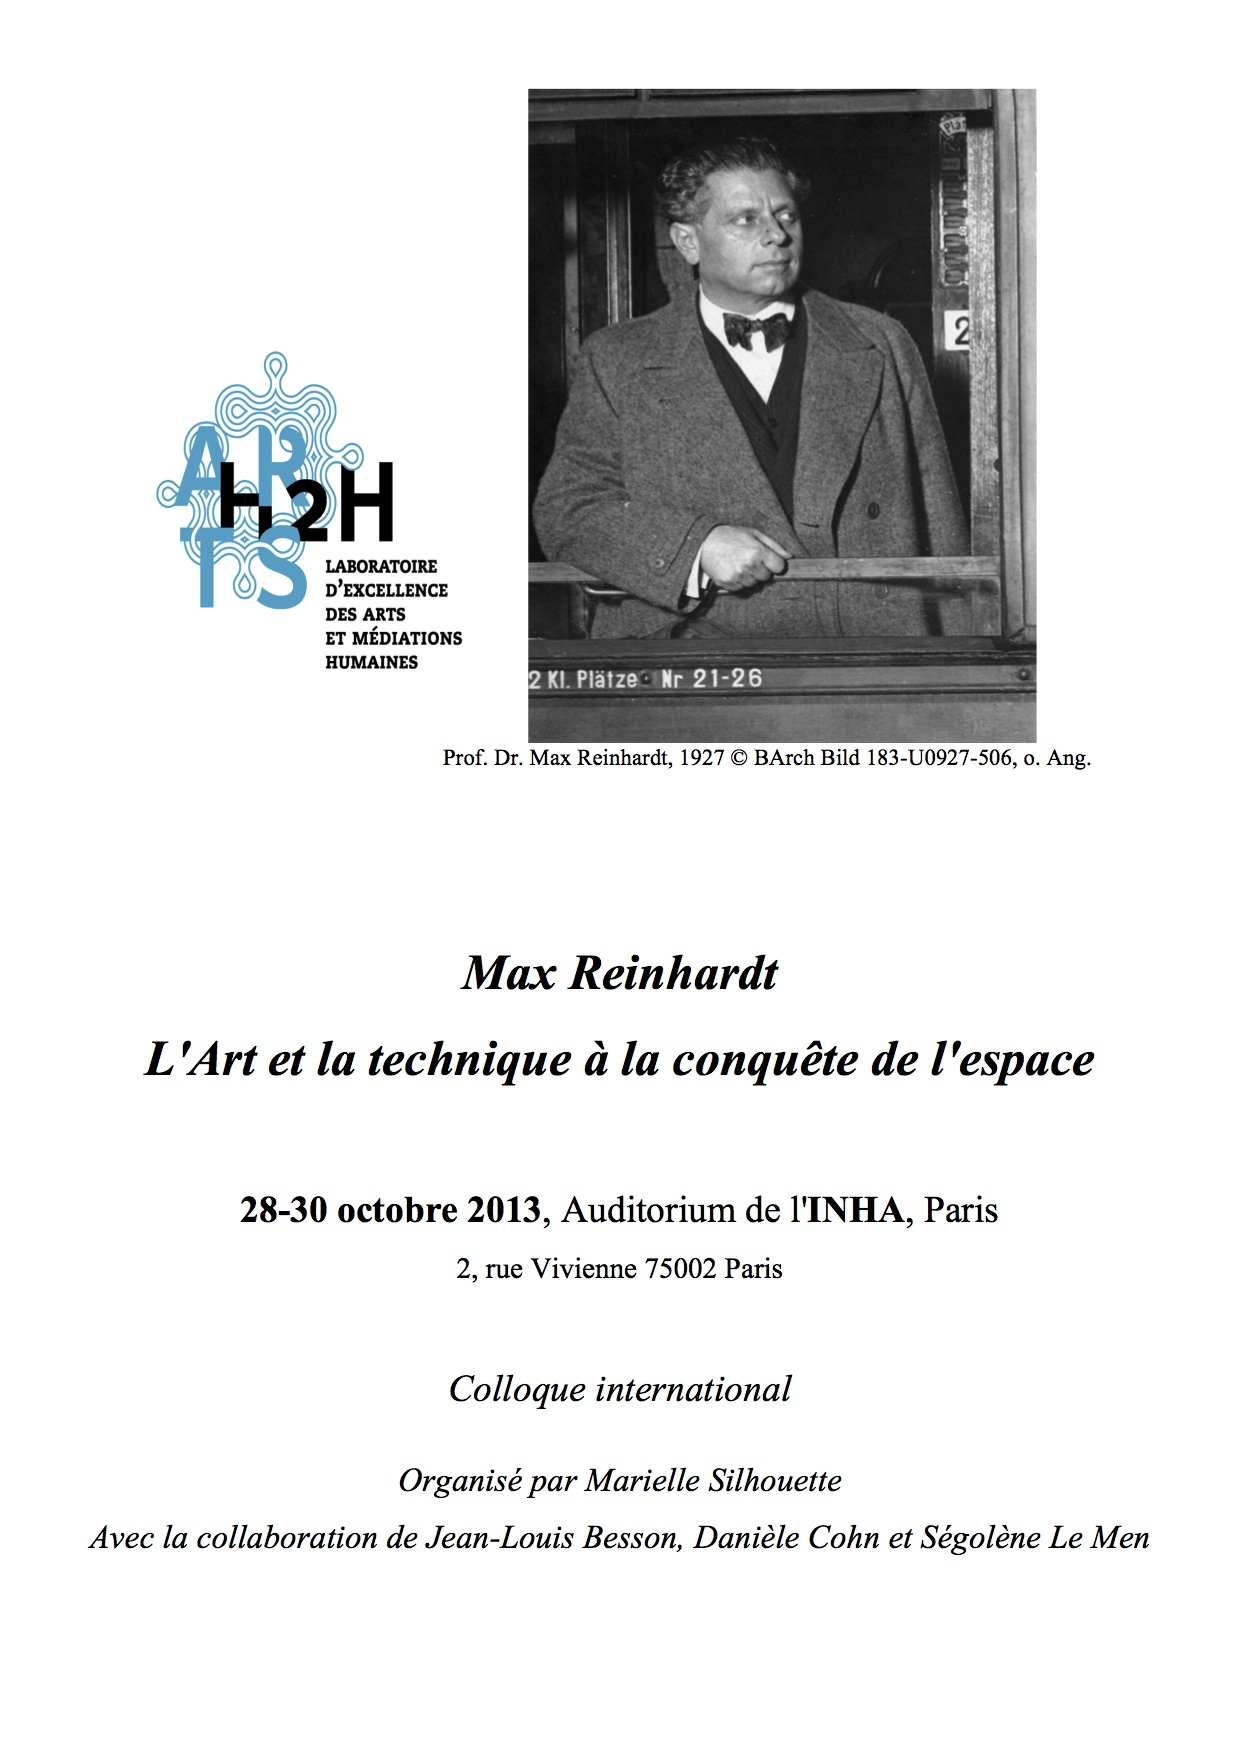 Colloque Max Reinhardt